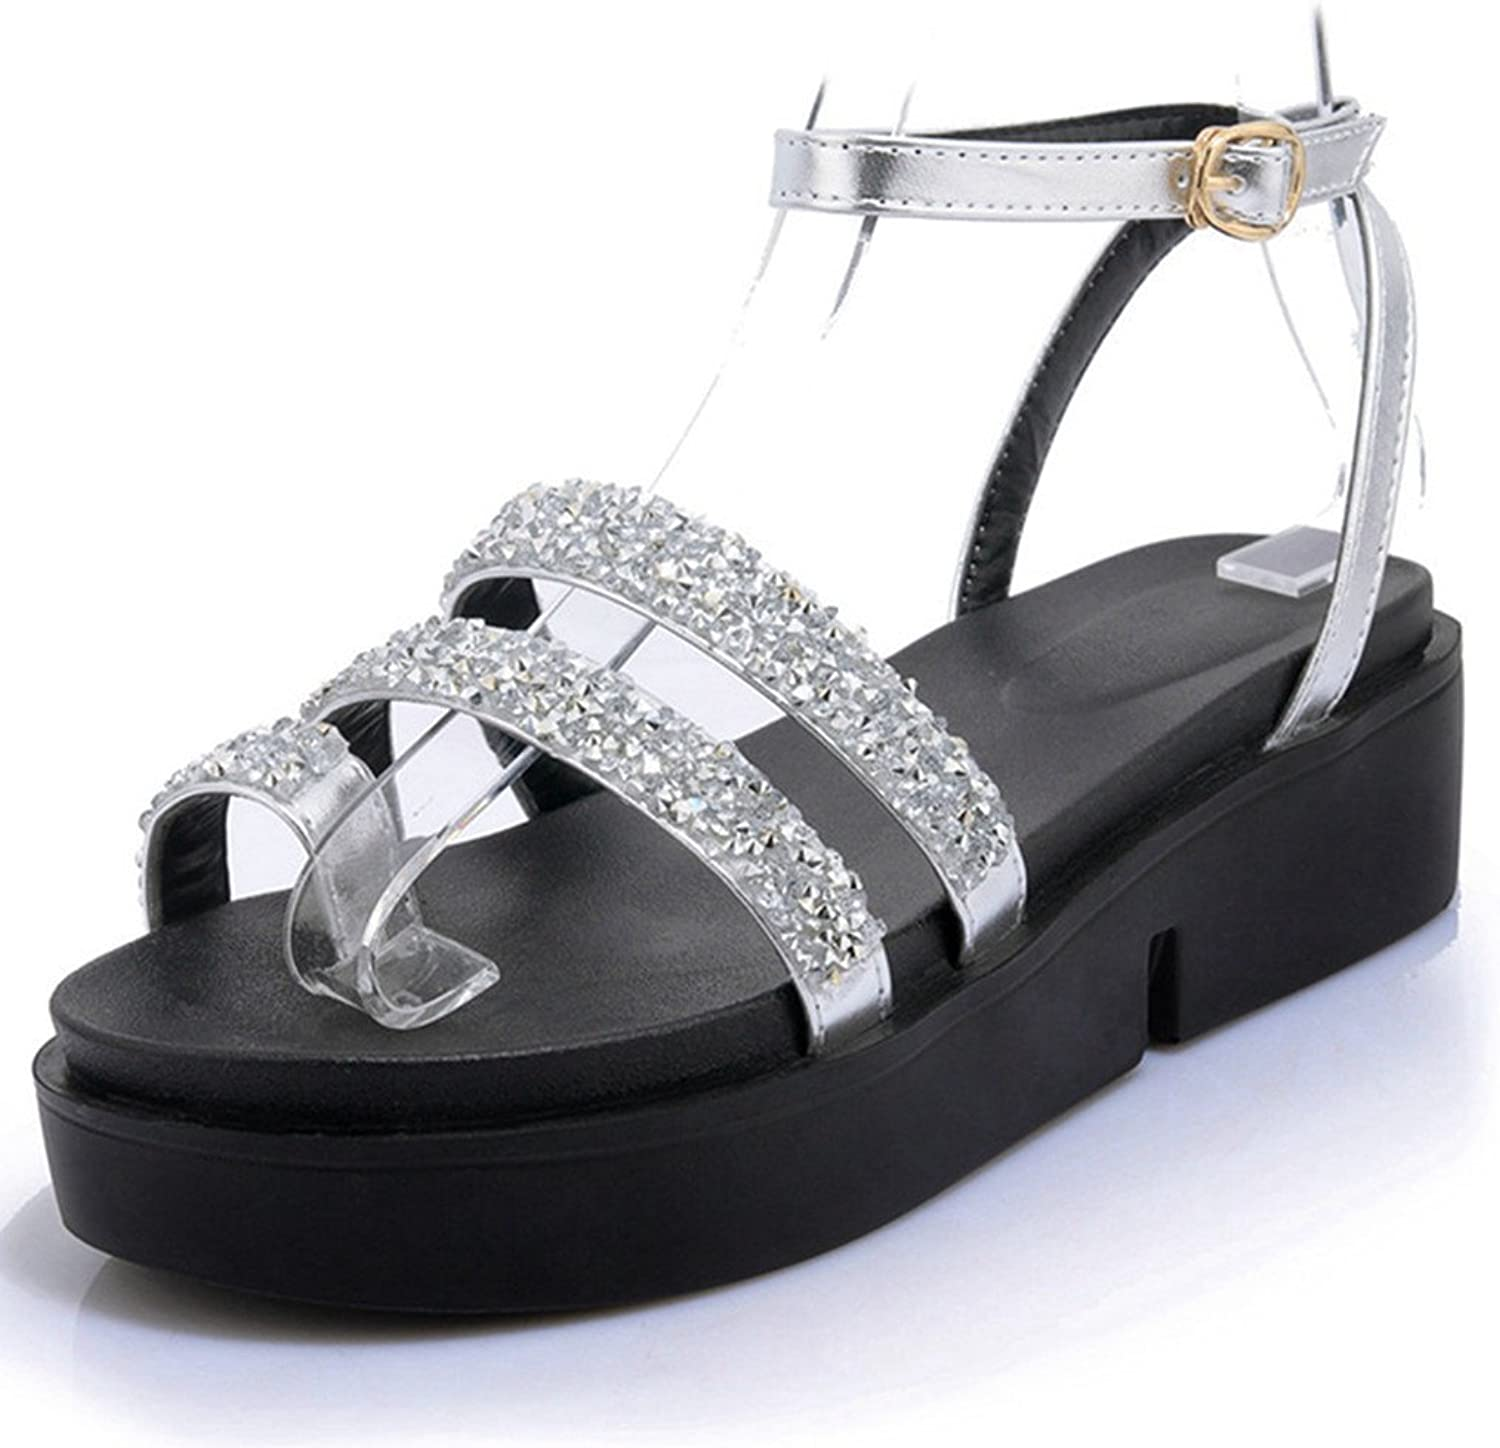 Platform Sandals for Women,Gladiator Rhinestone Ring Toe Wedges Buckle shoes